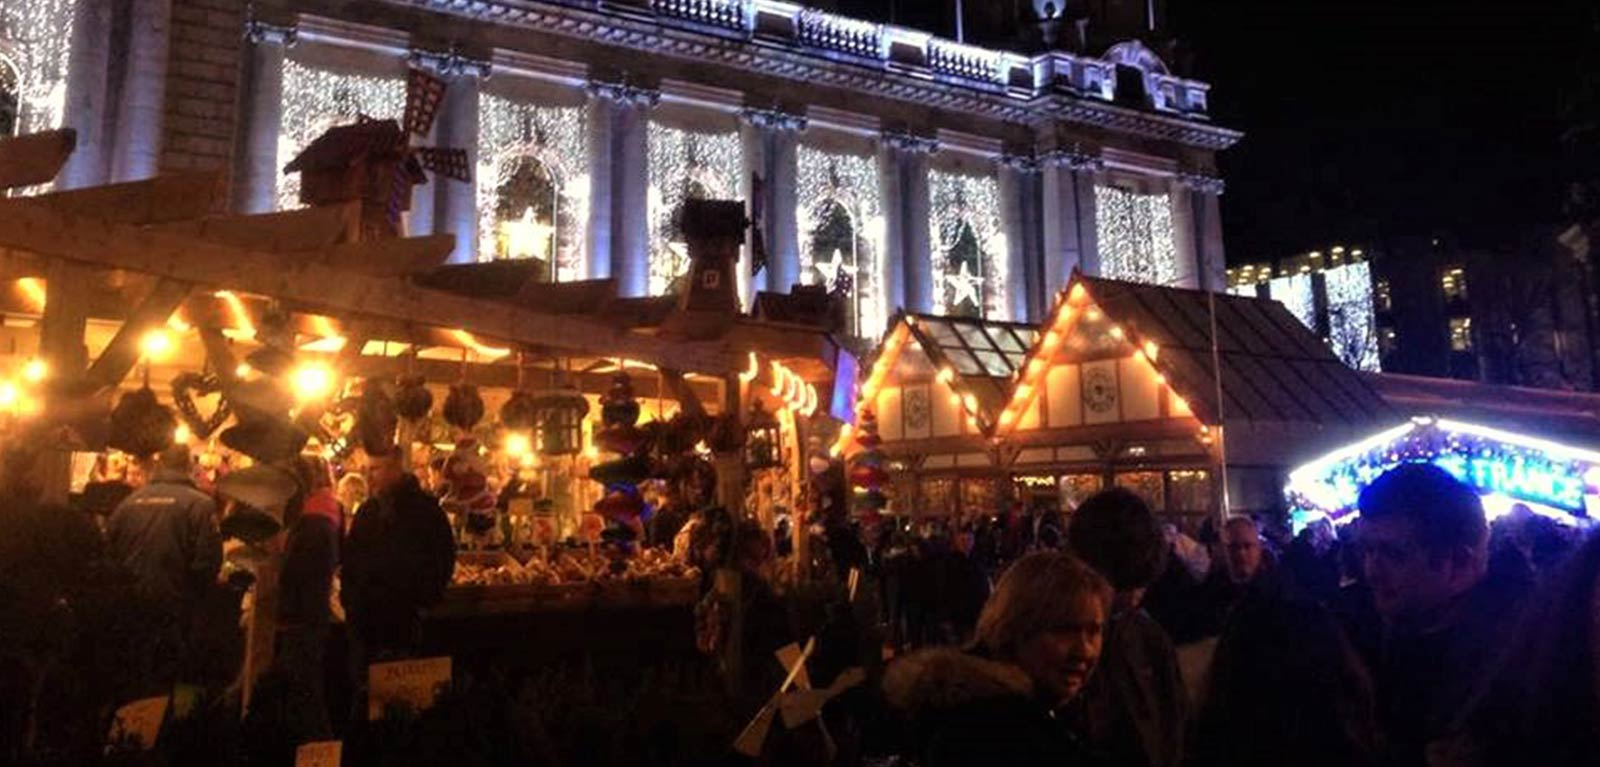 banner image of the Belfast Christmas market